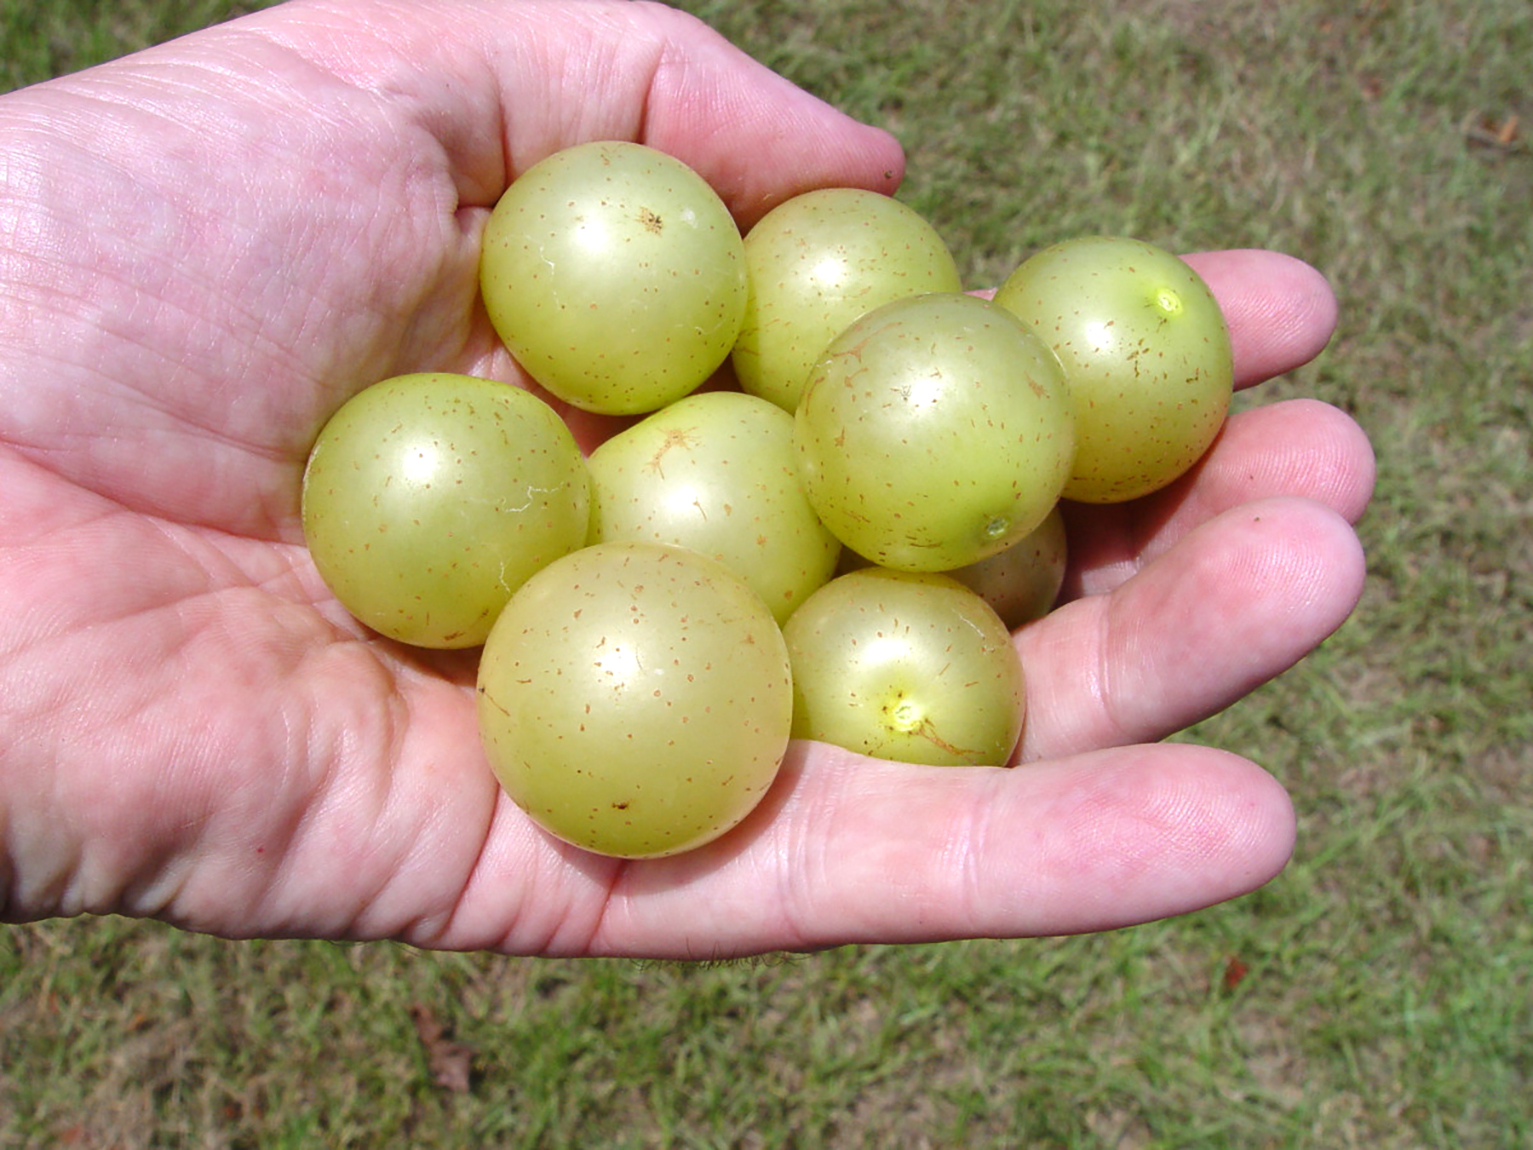 Hall muscadine. Bronze self-fertile. New release from UGA.